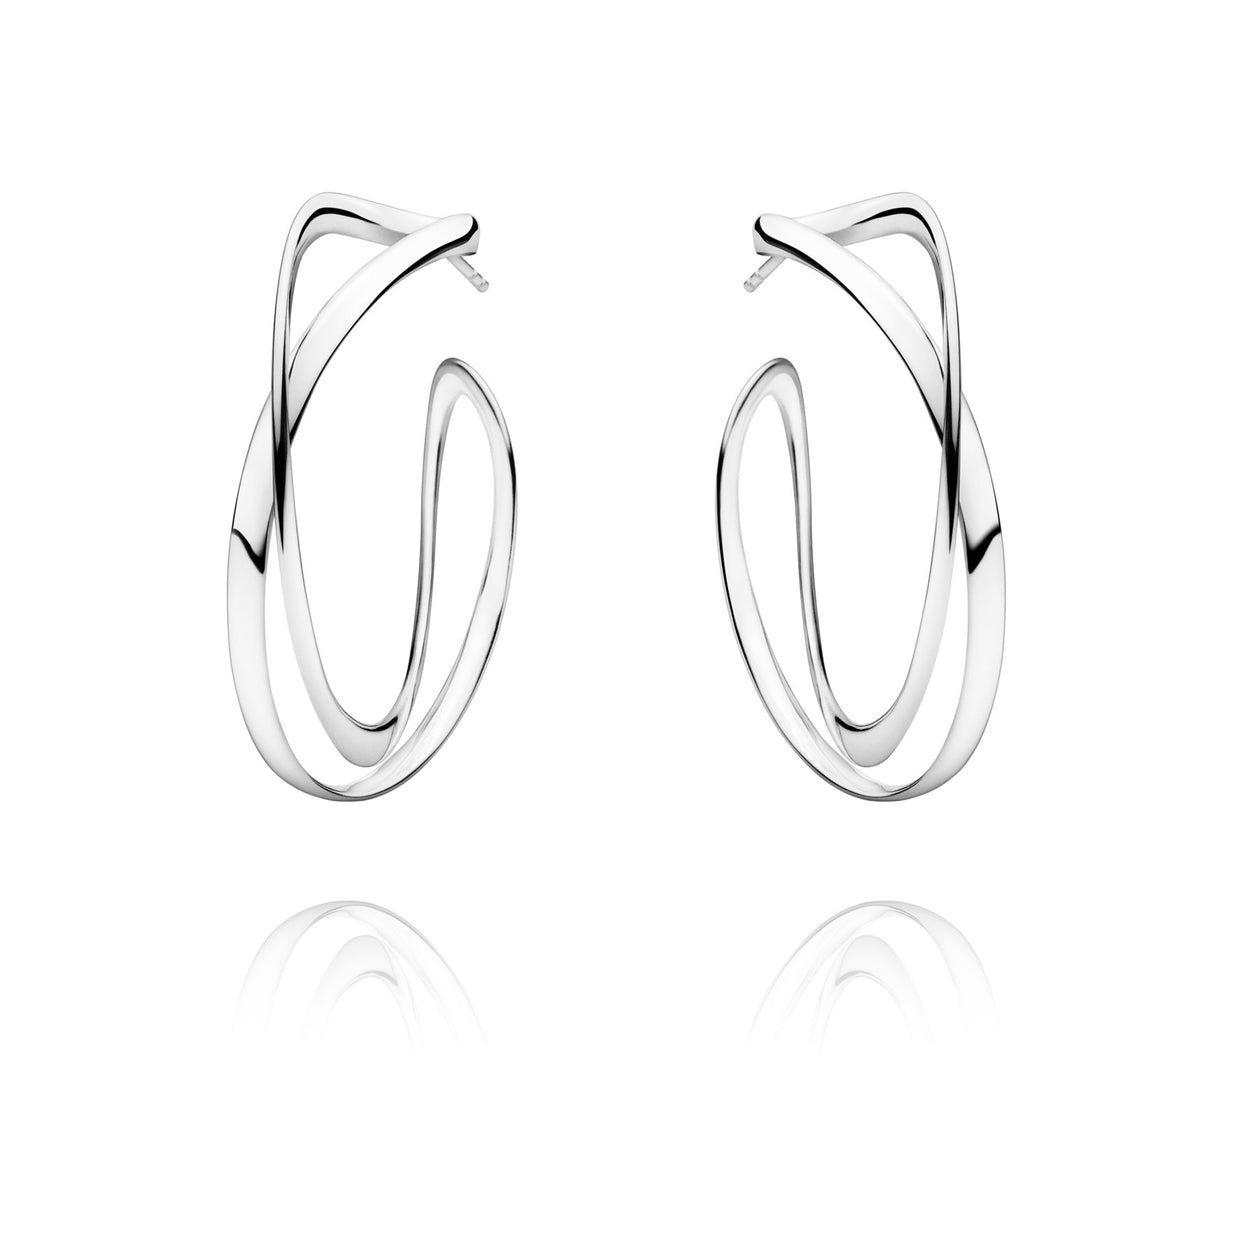 Georg Jensen Infinity Hoop Earrings in Sterling Silver-Hamilton & Inches